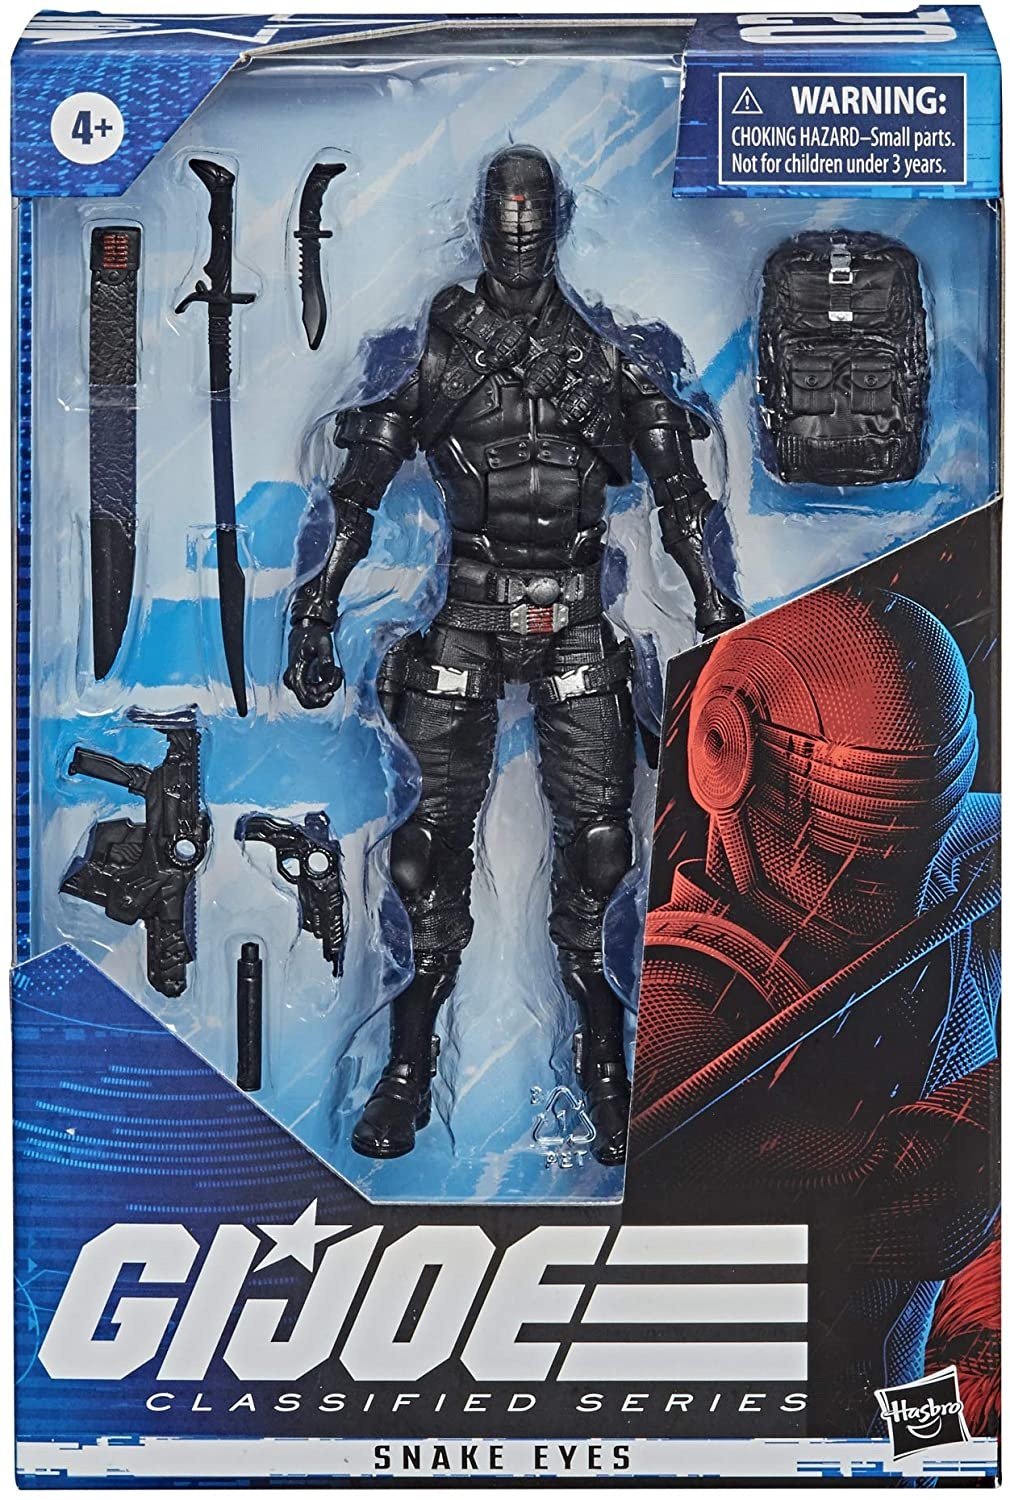 G.I. Joe Classified Series Wave 1 (Set of 5) Action Figures Collectible Premium Toy with Multiple Accessories 6-Inch Scale with Custom Package Art